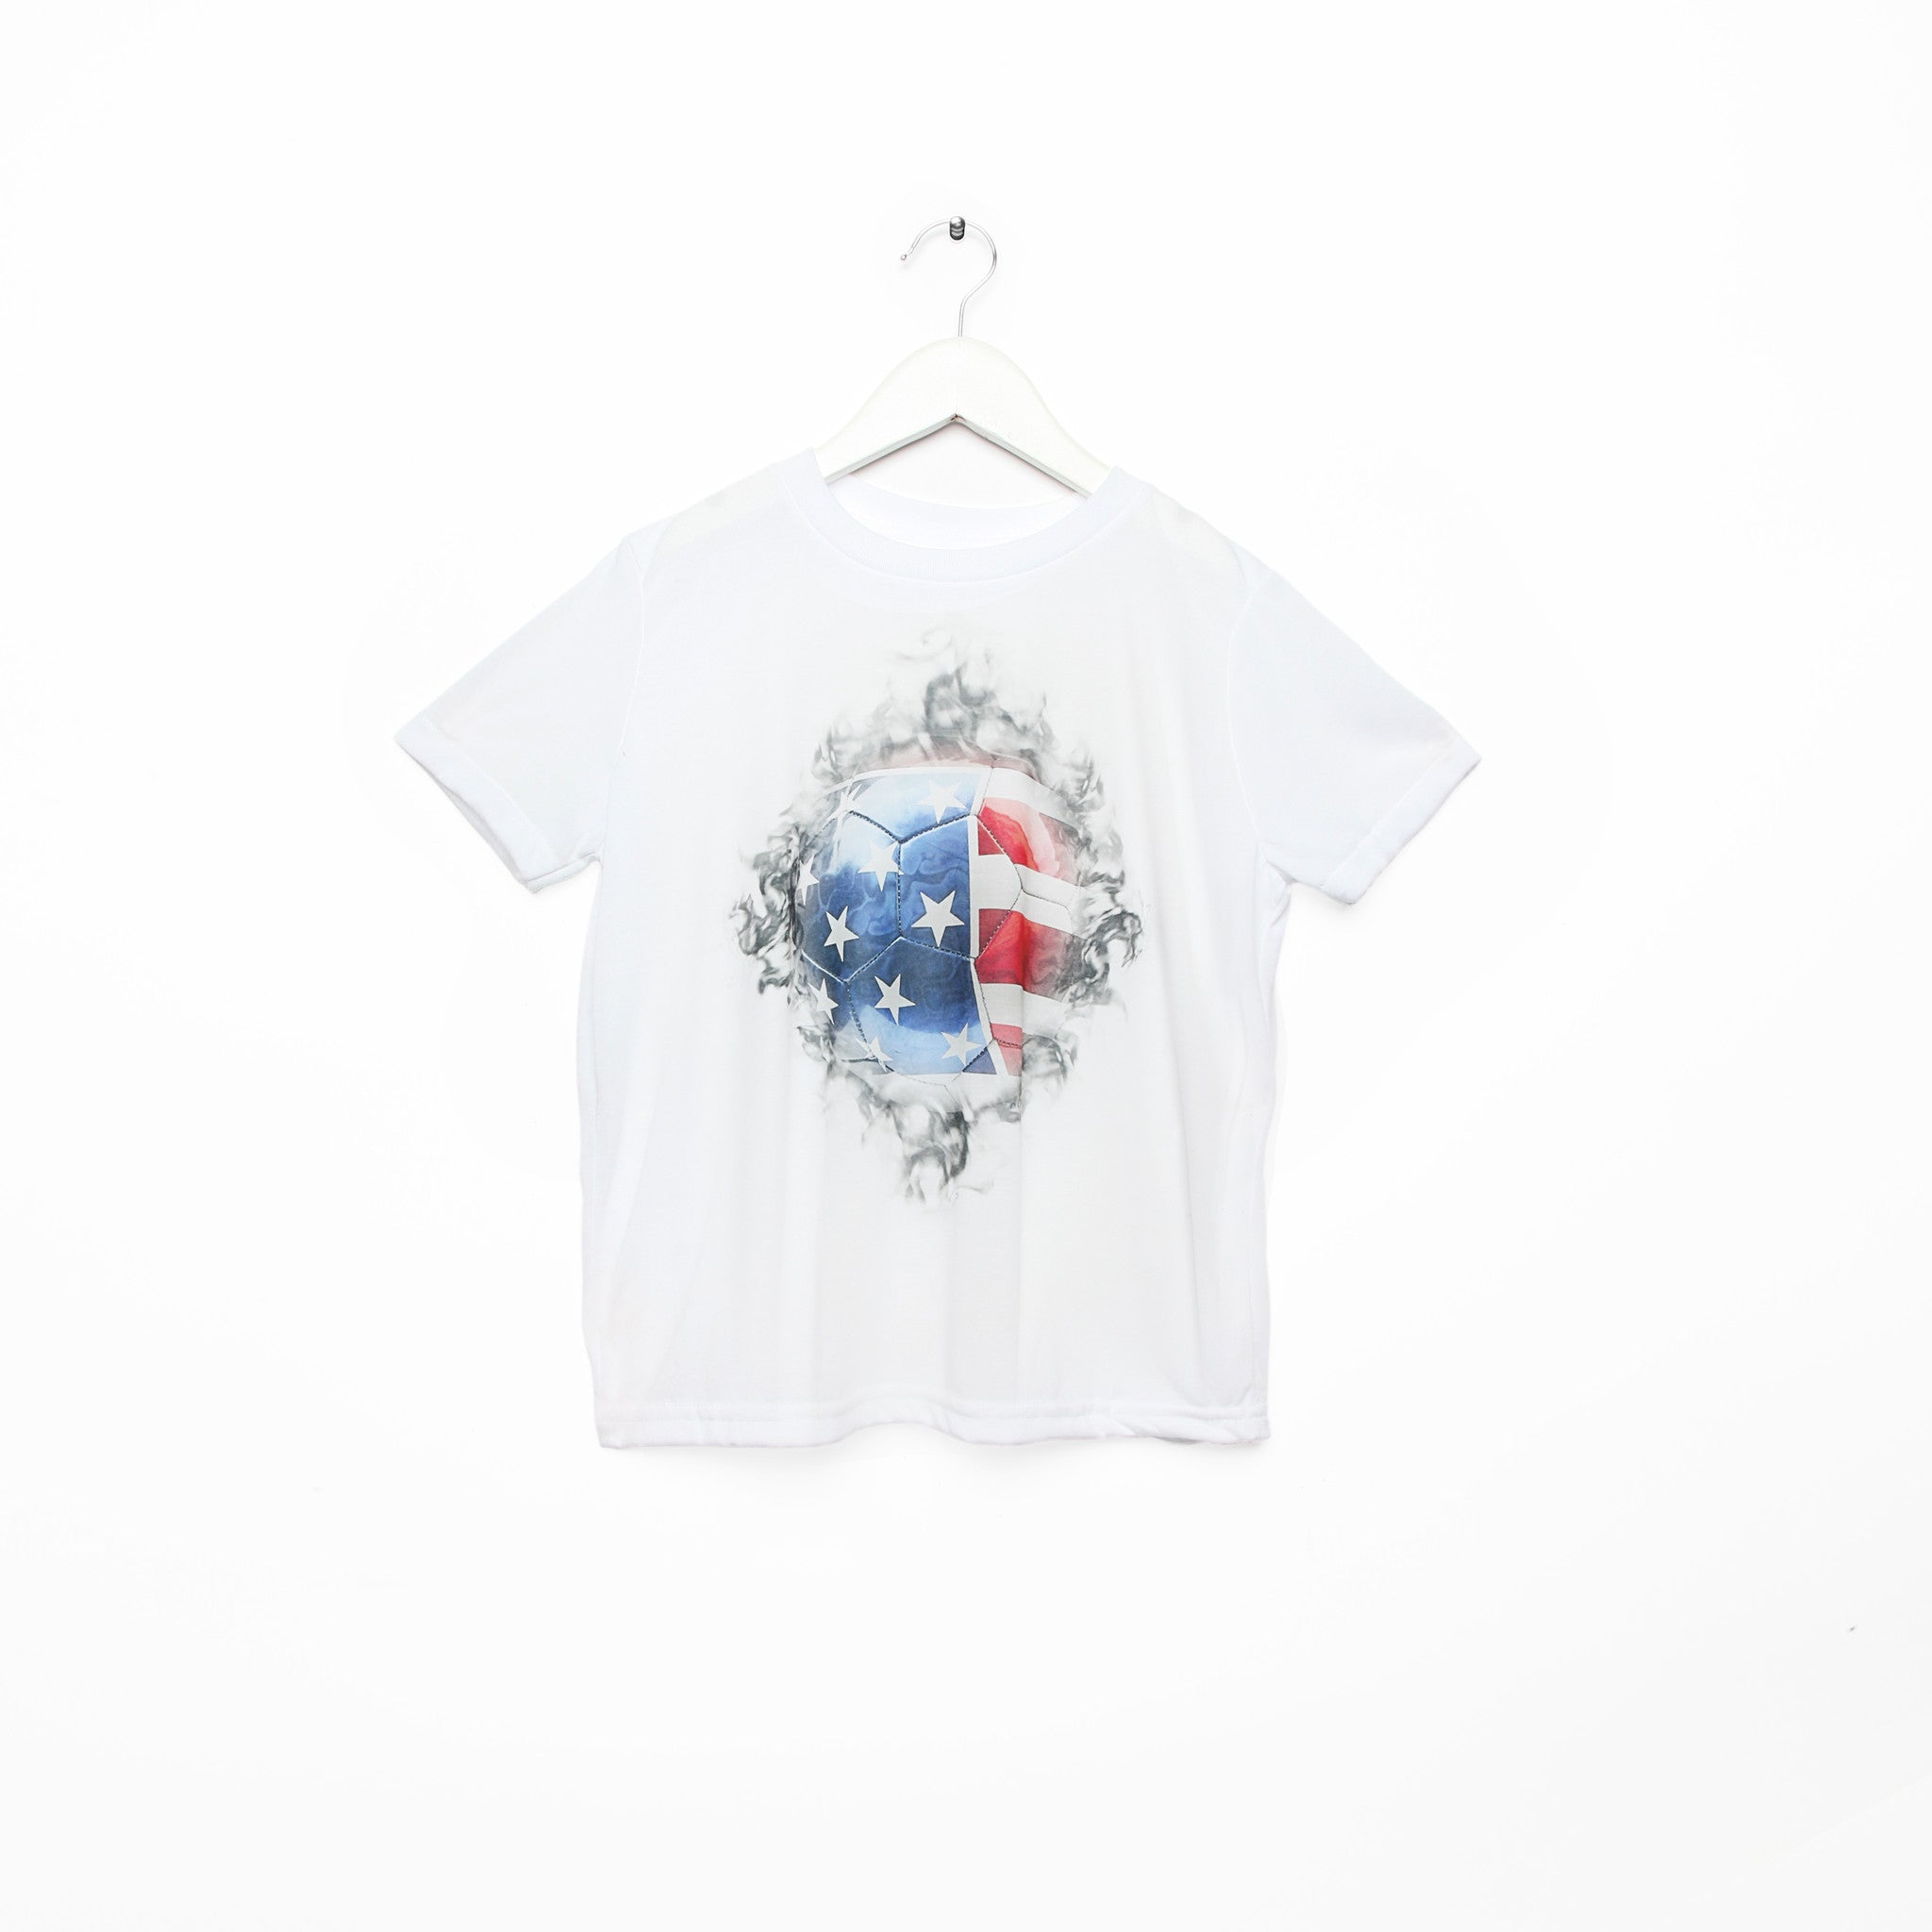 STARS AND STRIPES KIDS TEE